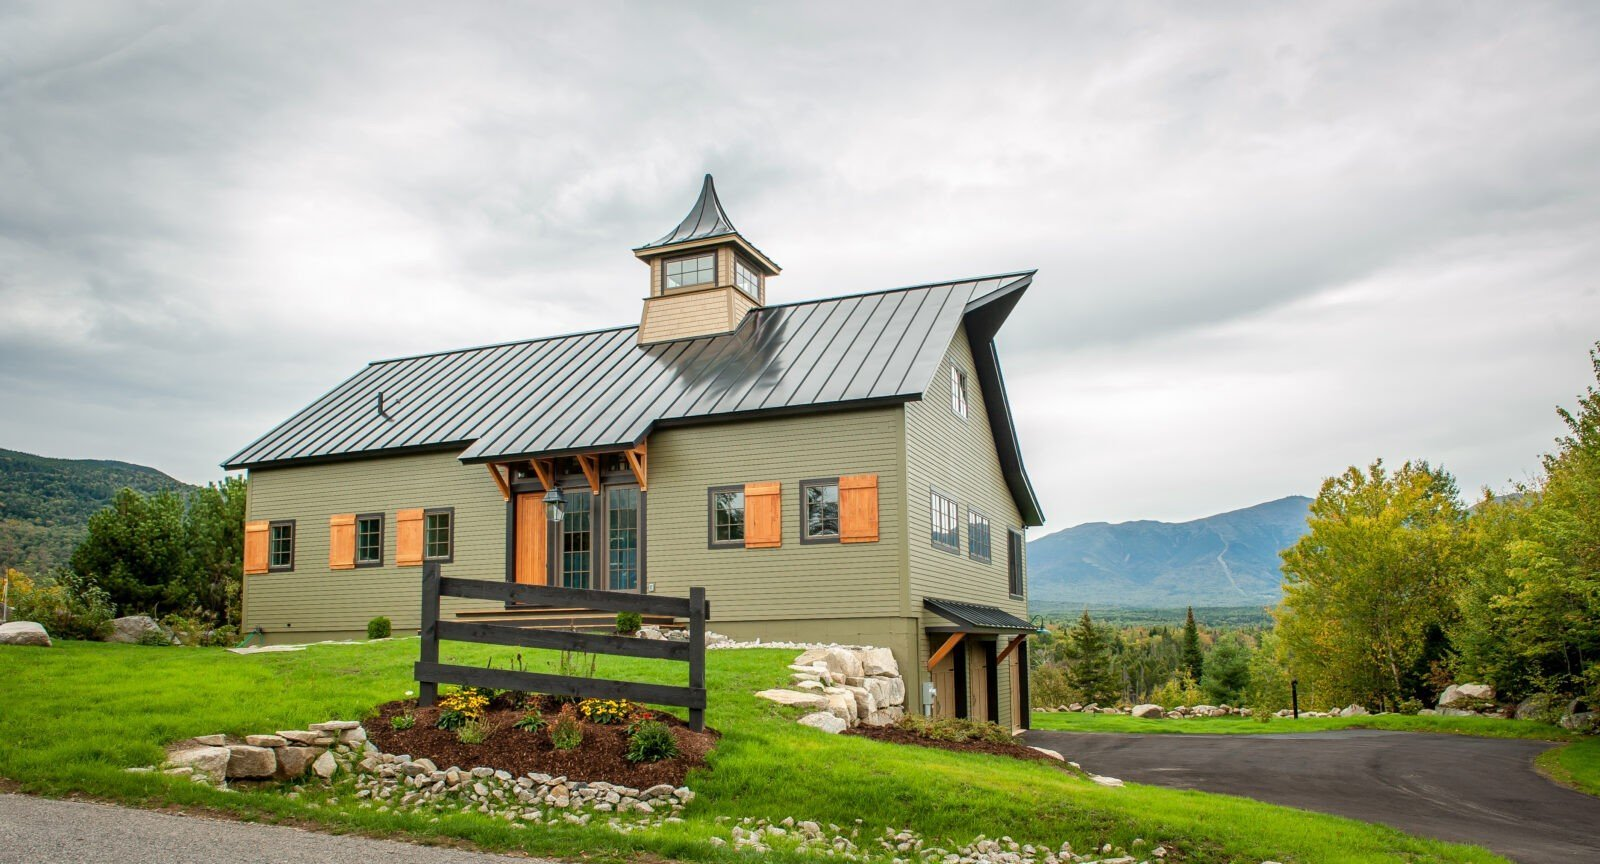 Top notch barn home plans from the ybh design team for Barn house blueprints